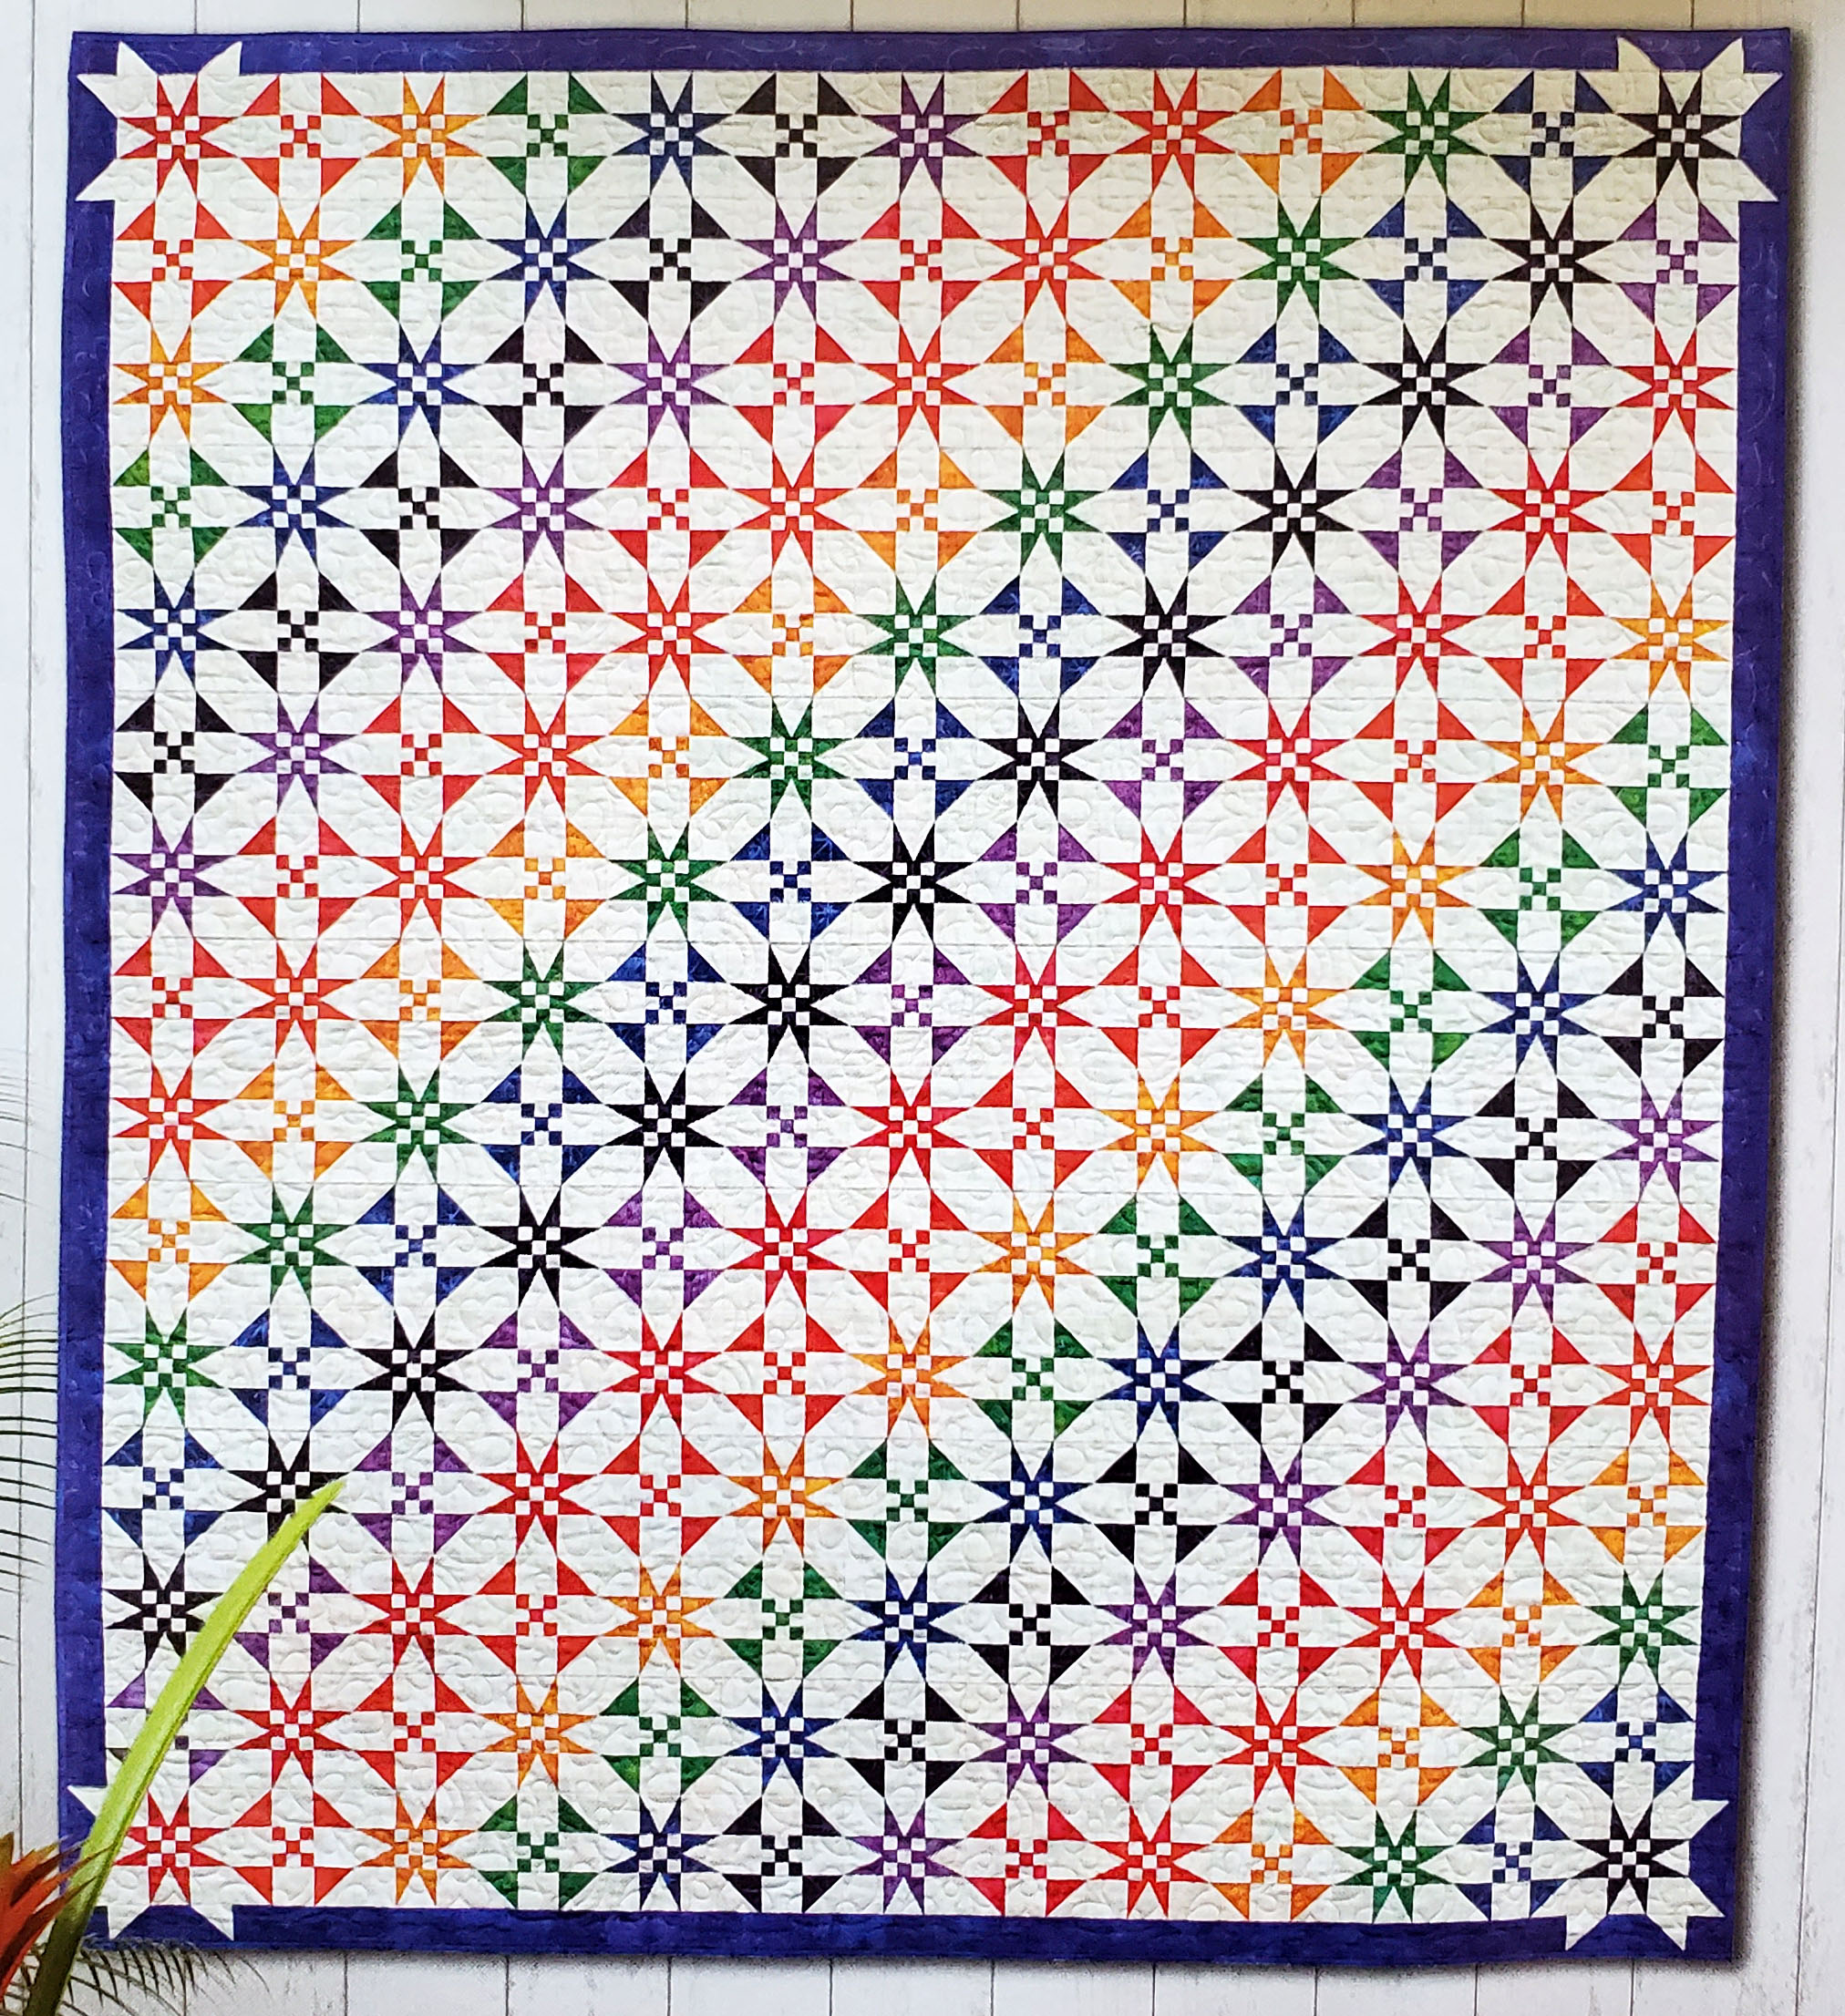 """Shelley Scott Tobisch  You can see Shelly's gorgeous """"Here Comes the Sun"""" quilt in the September issue of American Quilter! We love seeing EQ users in magazines! Find the pattern and Shelley's tips in the magazine.  Photo credit: American Quilter Magazine"""